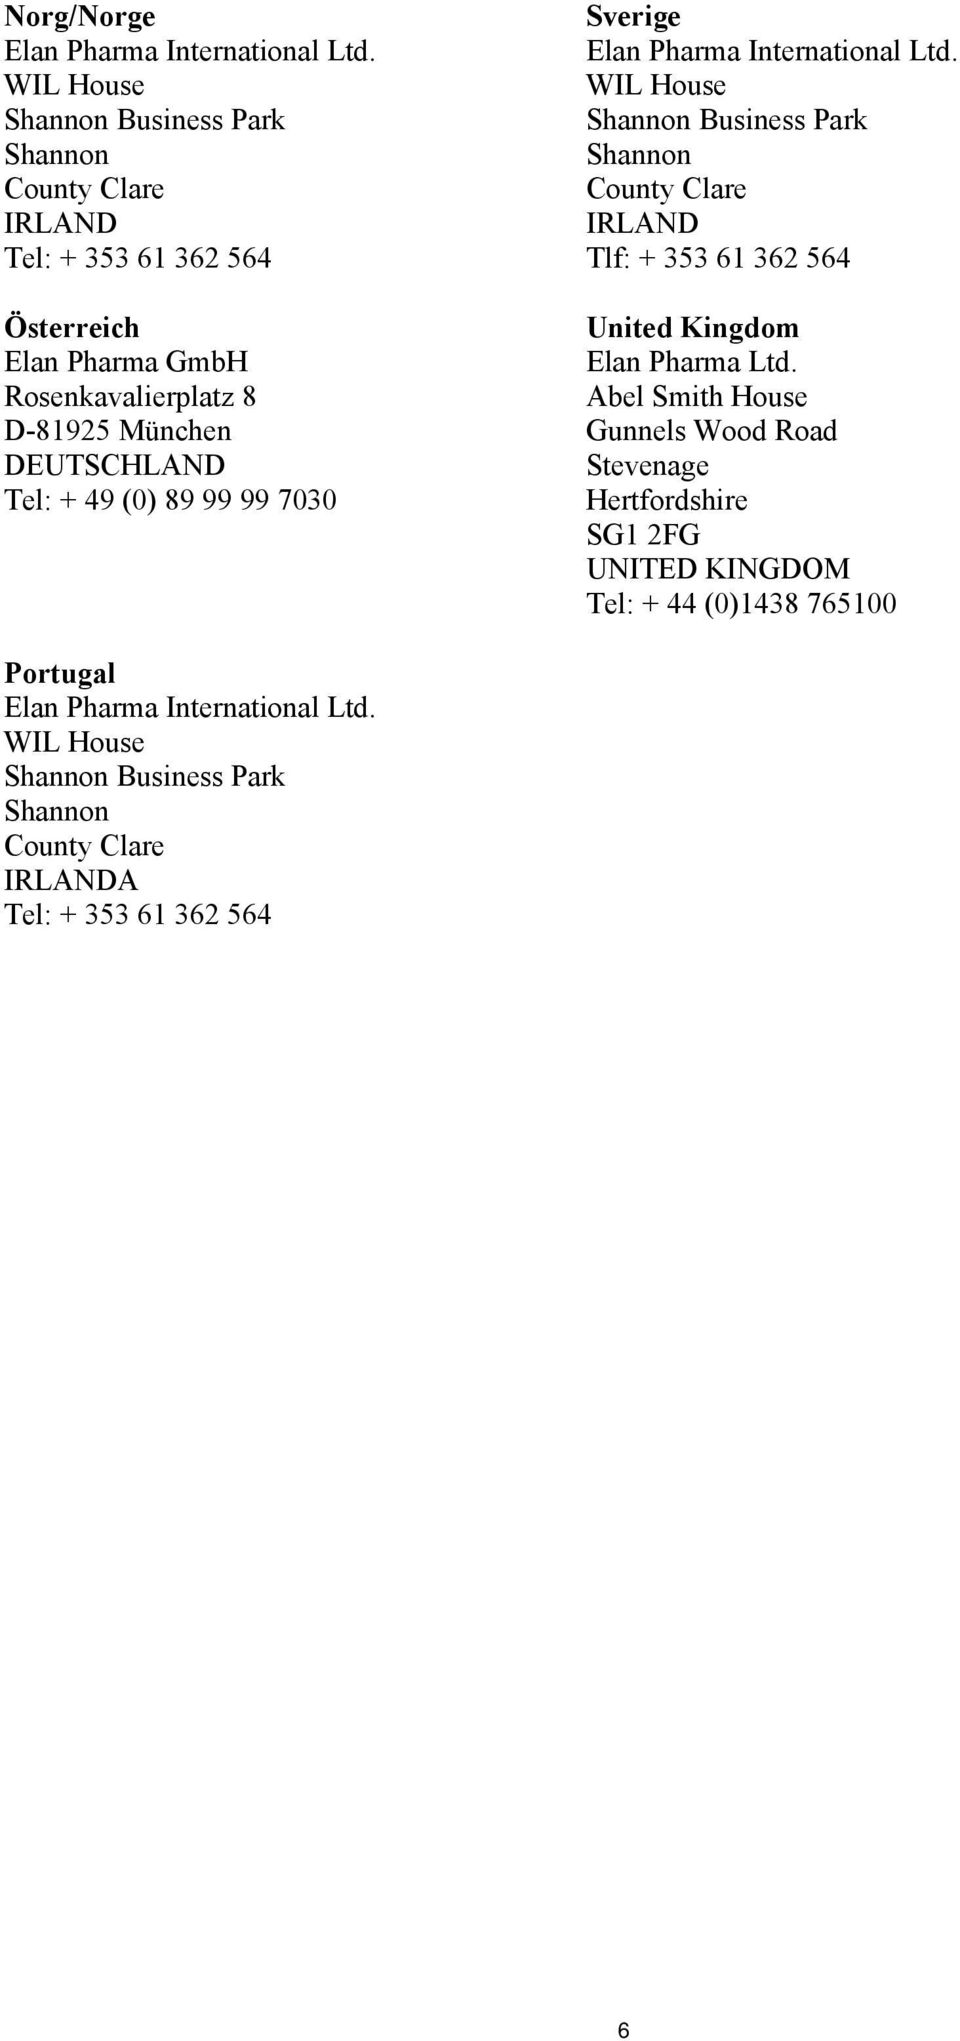 362 564 United Kingdom Elan Pharma Ltd.